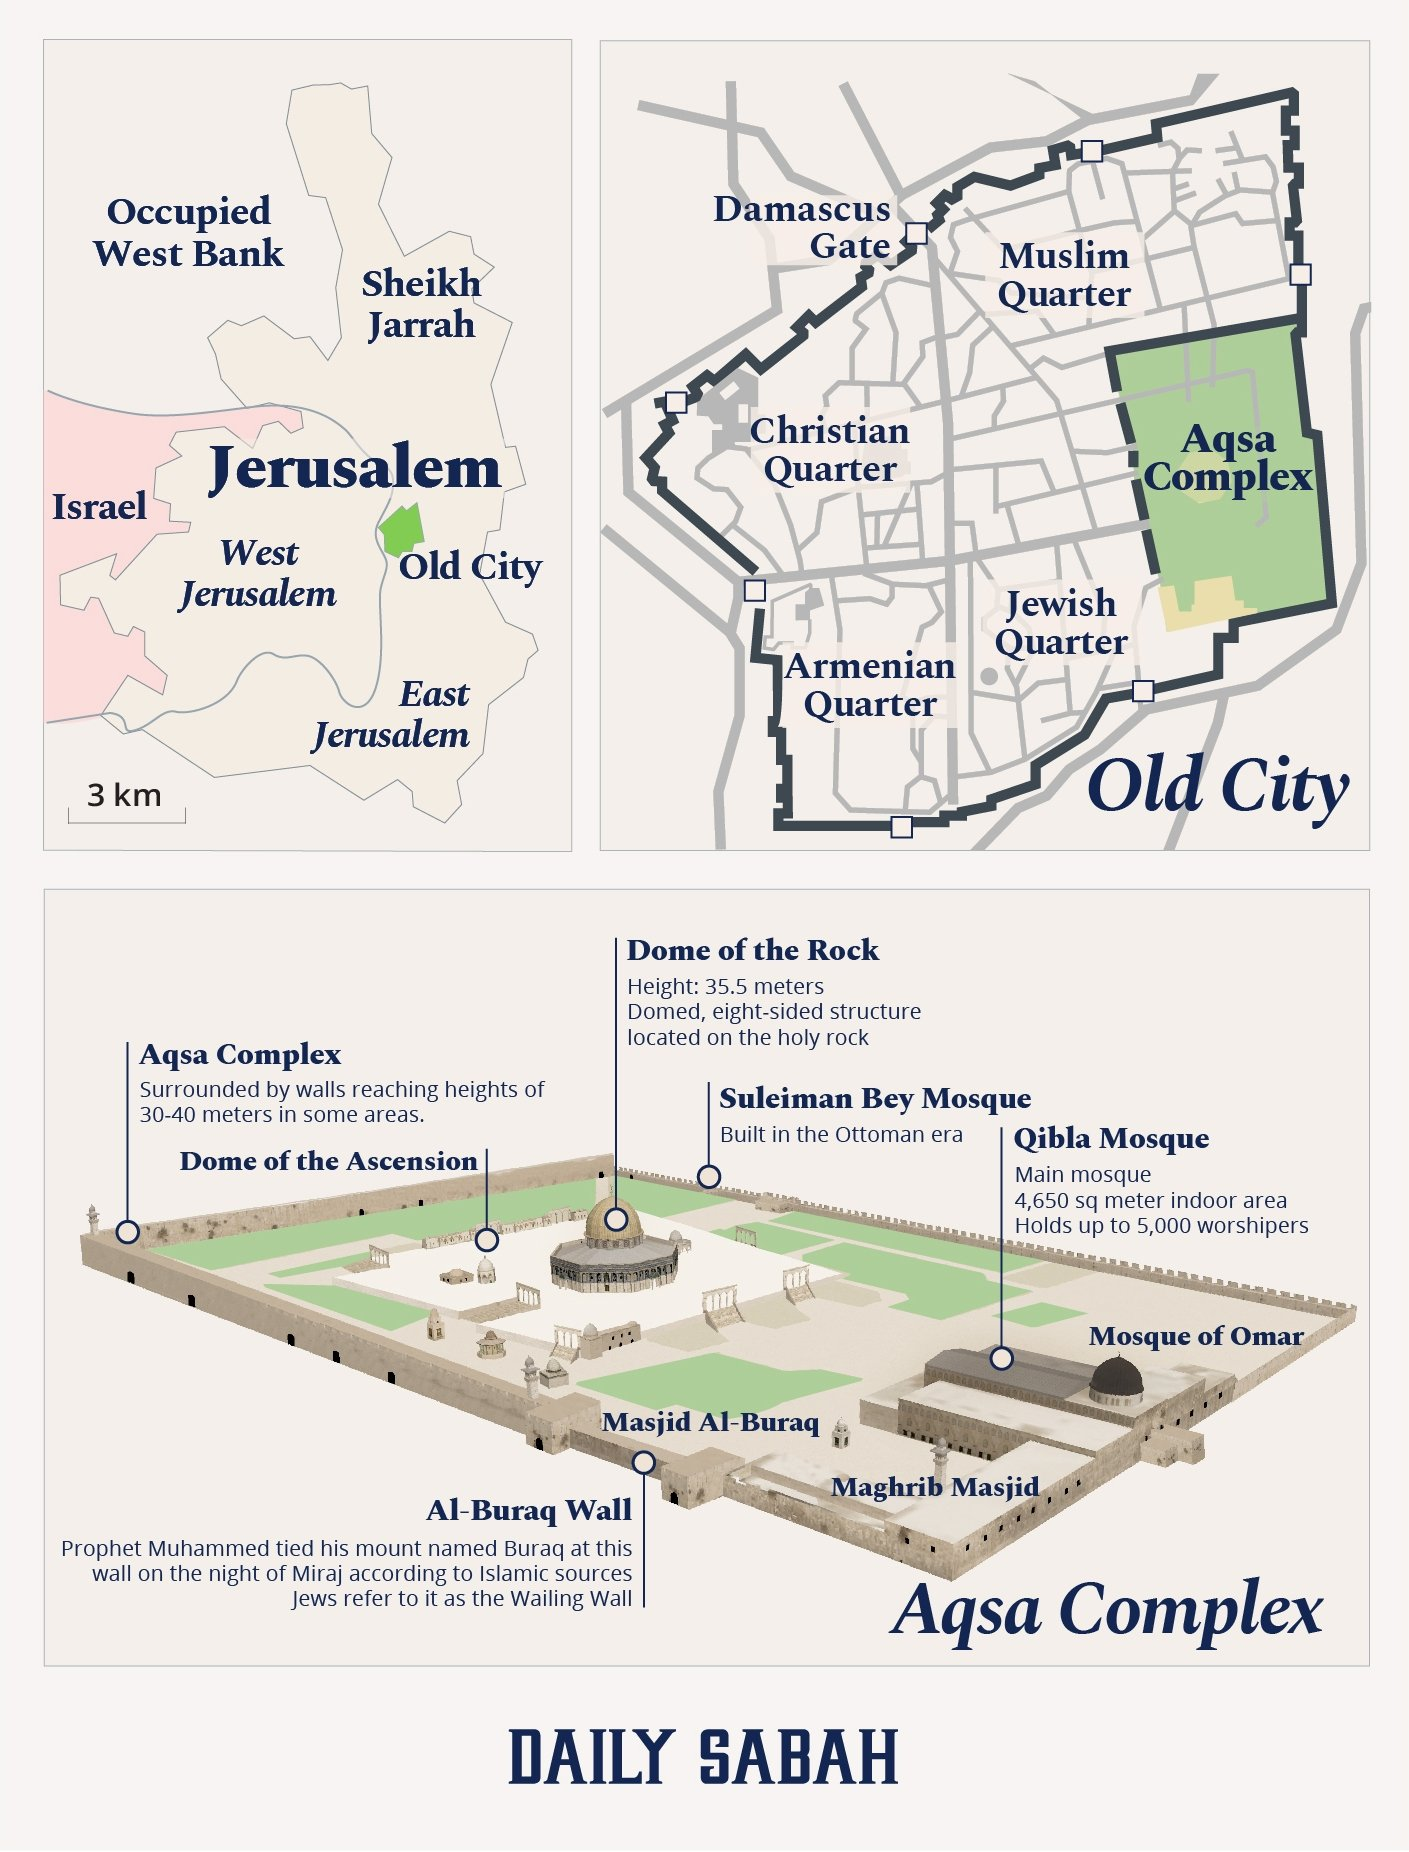 The general structure and location of the Al-Aqsa Mosque compound